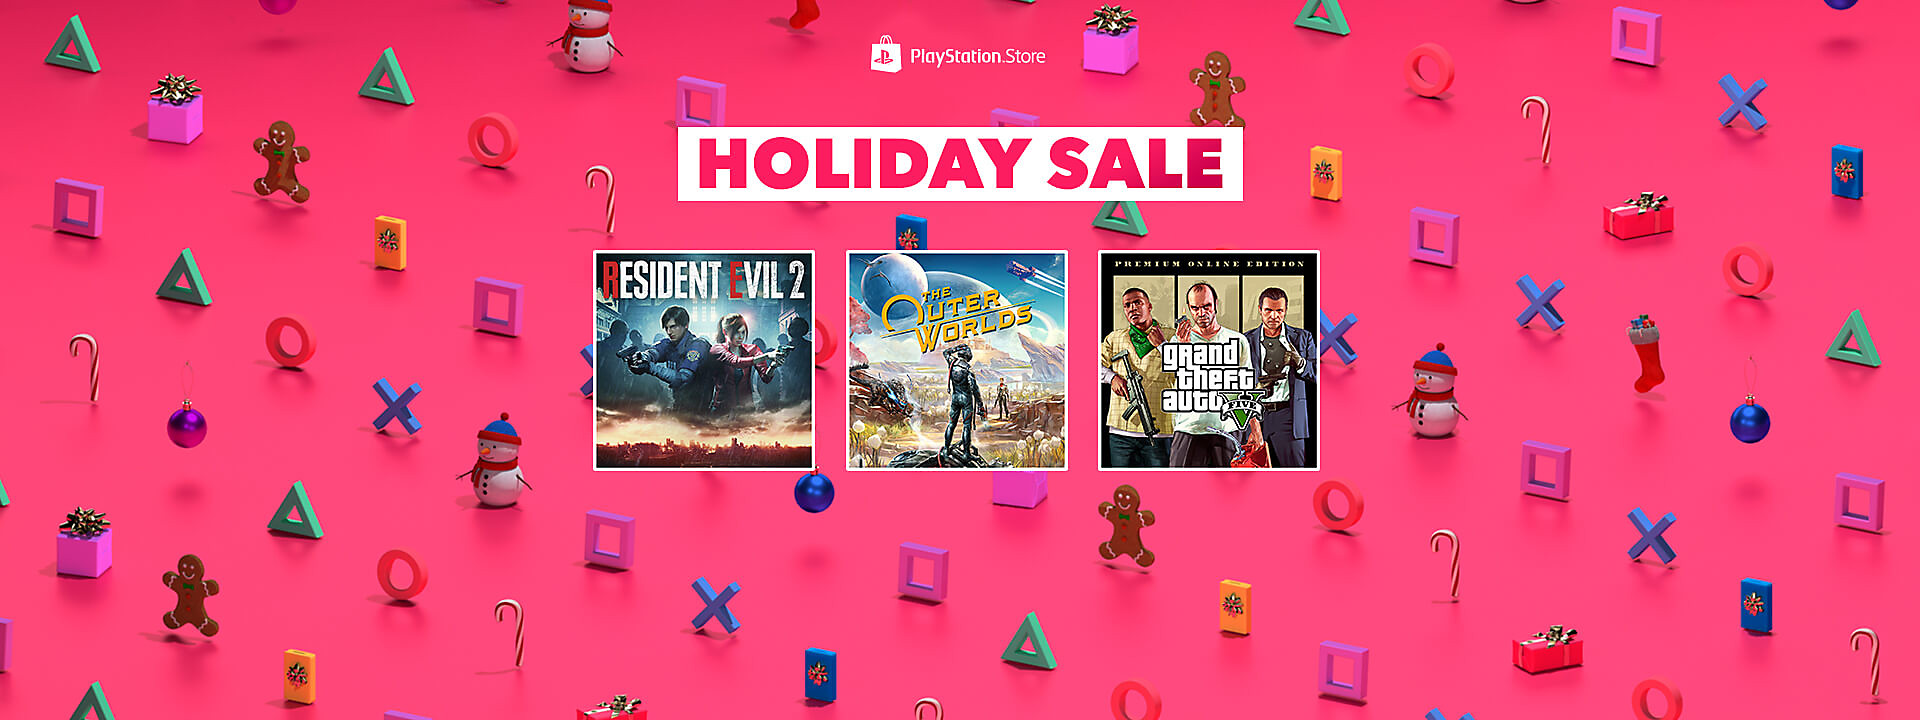 PlayStation Store - Holiday Sale